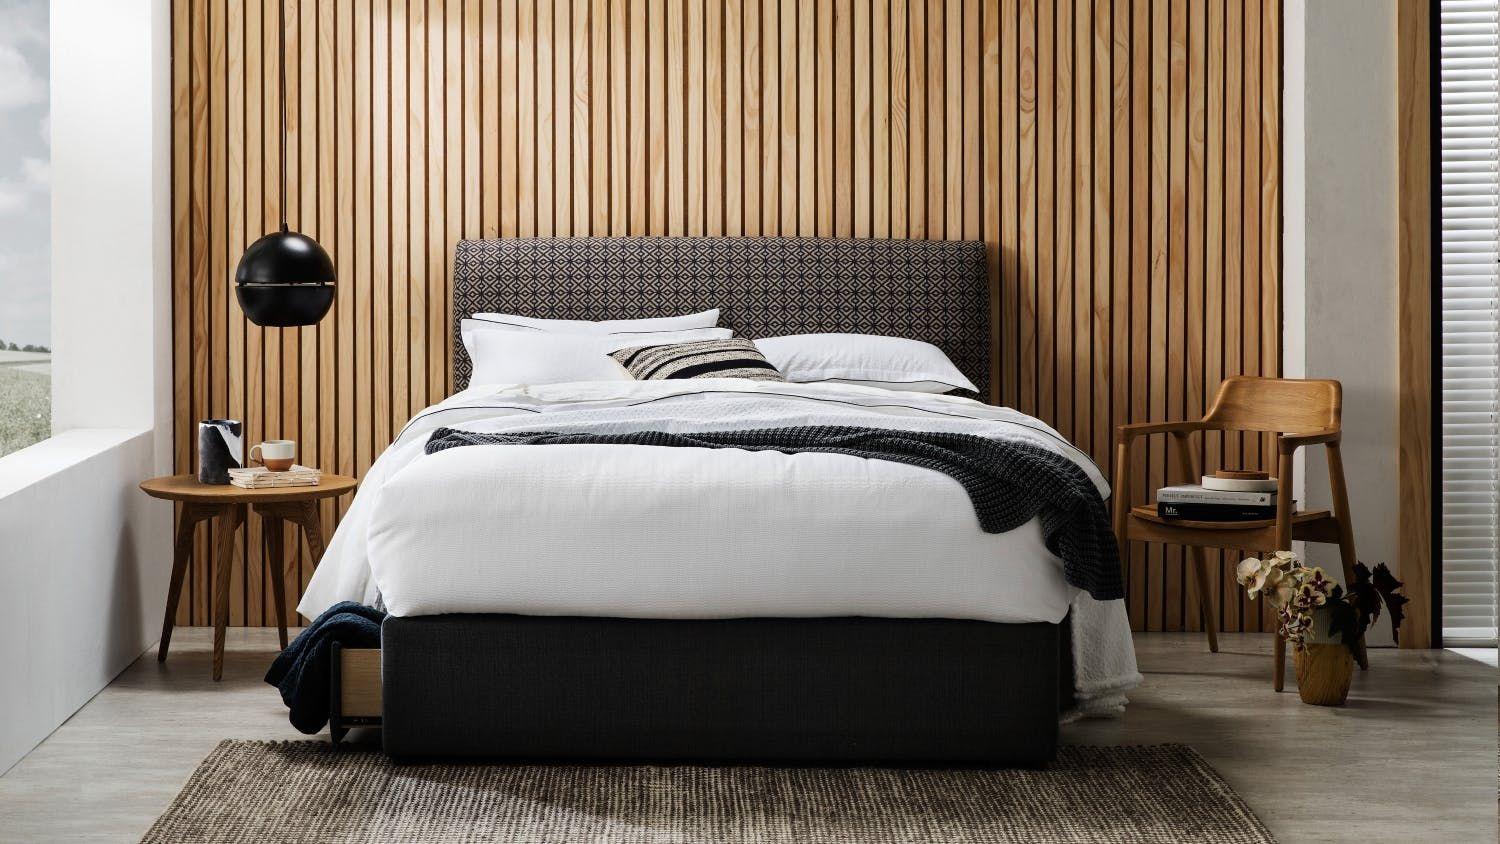 Home Bedroom Beds Bedheads Bolton Fabric Bedhead Modern Bedroom Design Modern Bedroom Timber Bedhead